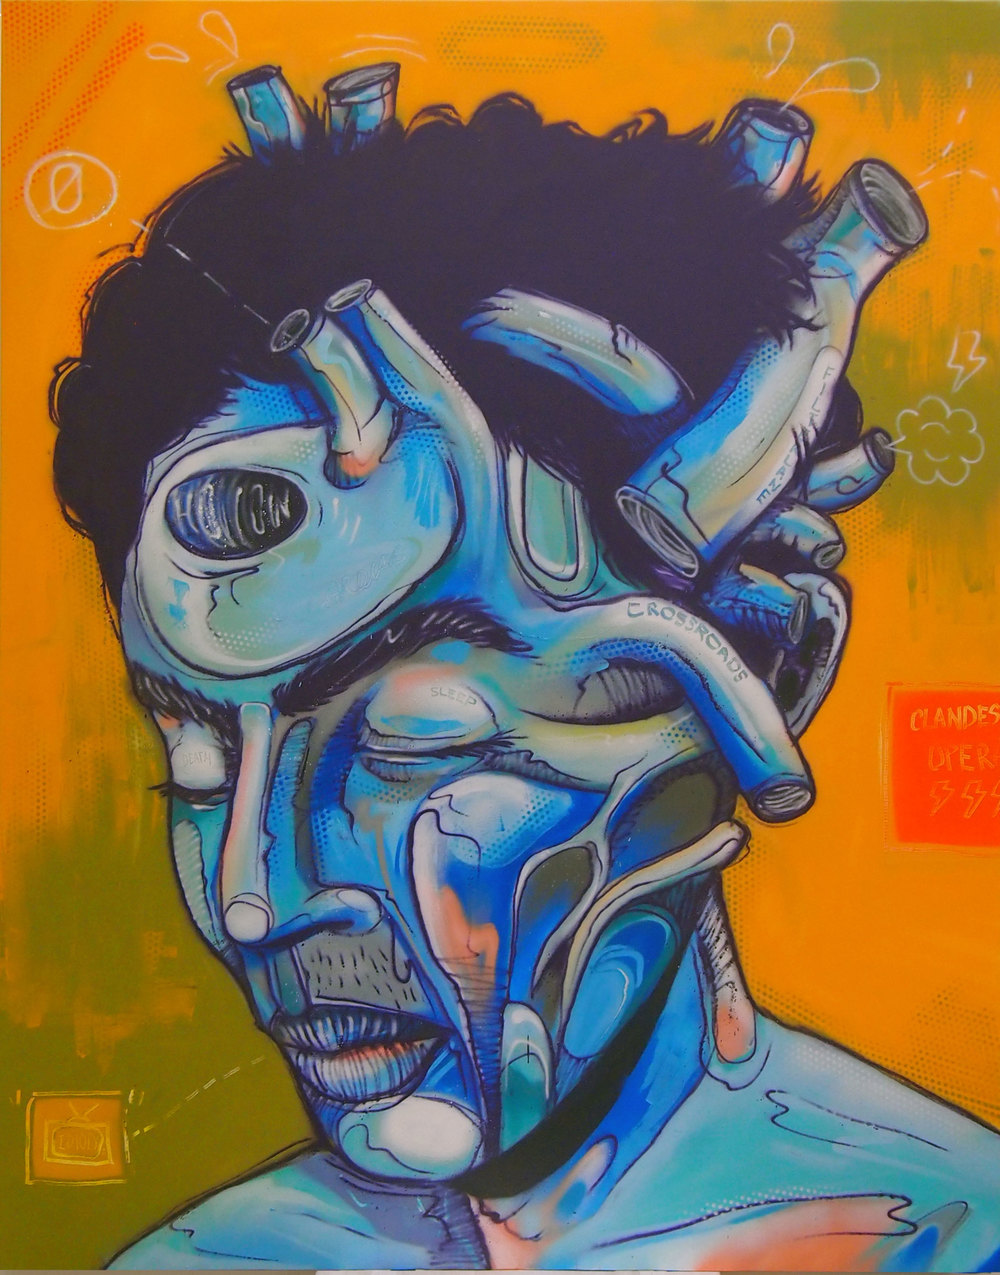 ZERO  CardiacUnrest  2013 Aerosol paint on canvas 60 x 40""